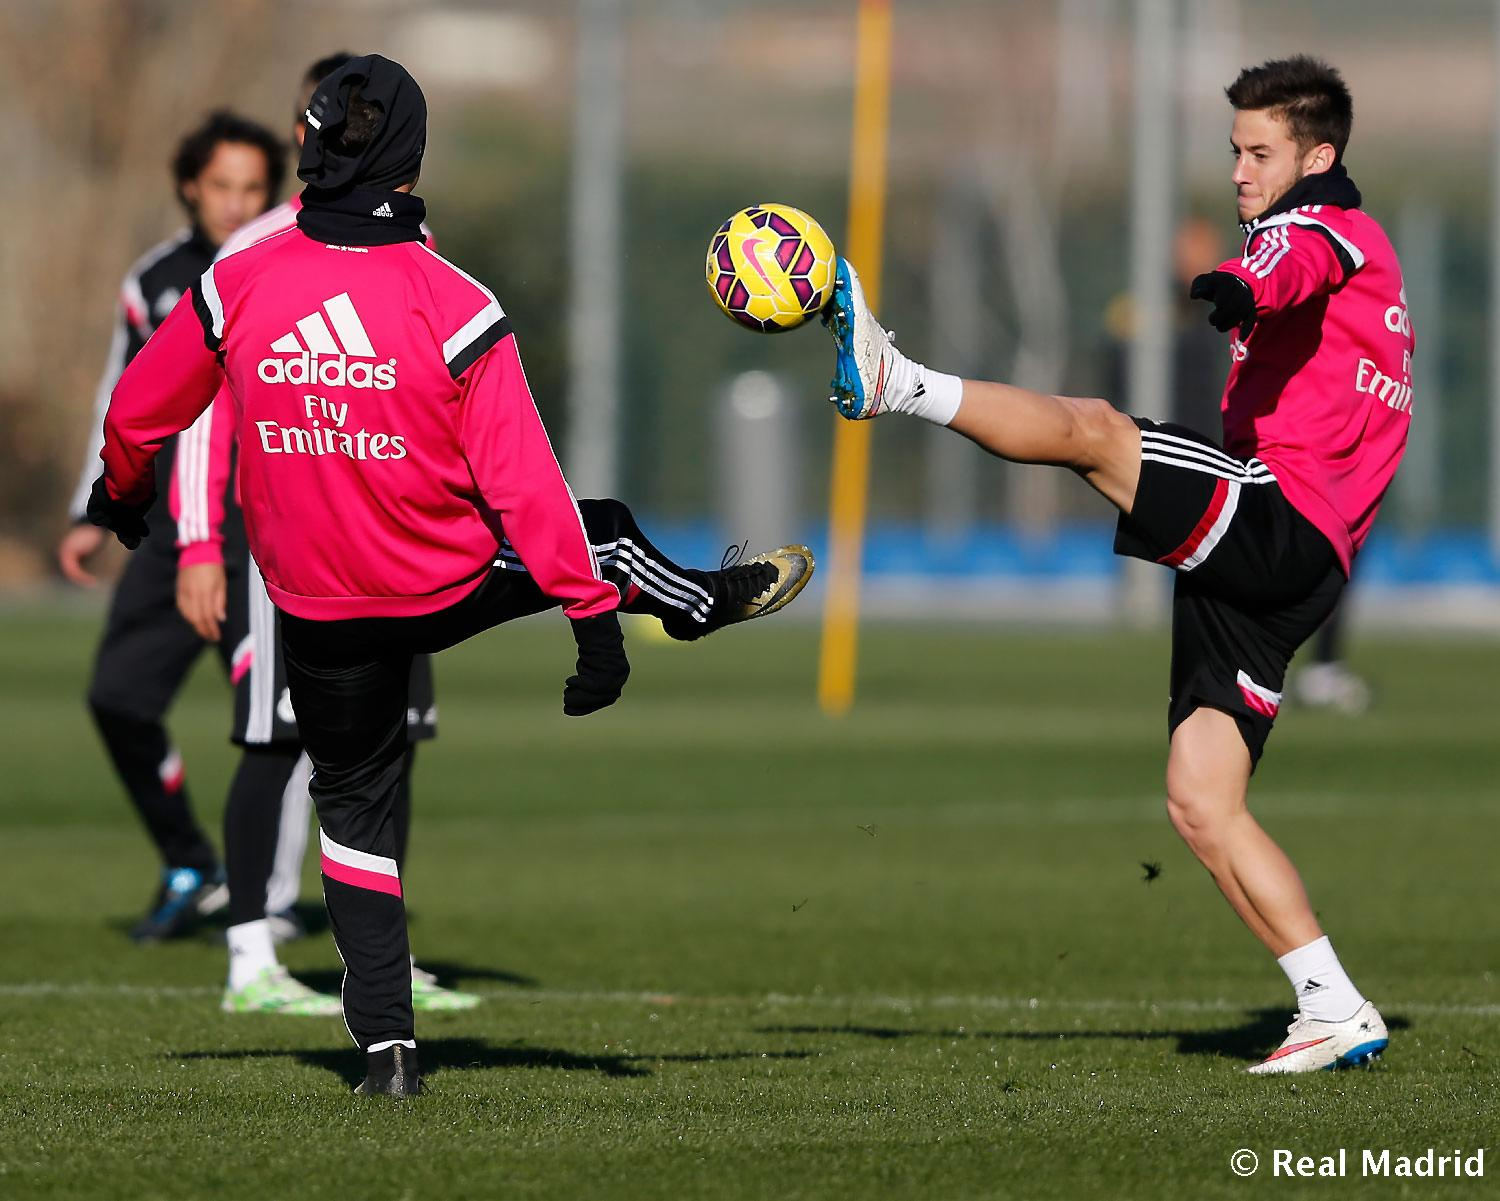 Real Madrid - Entrenamiento del Real Madrid - 17-01-2015